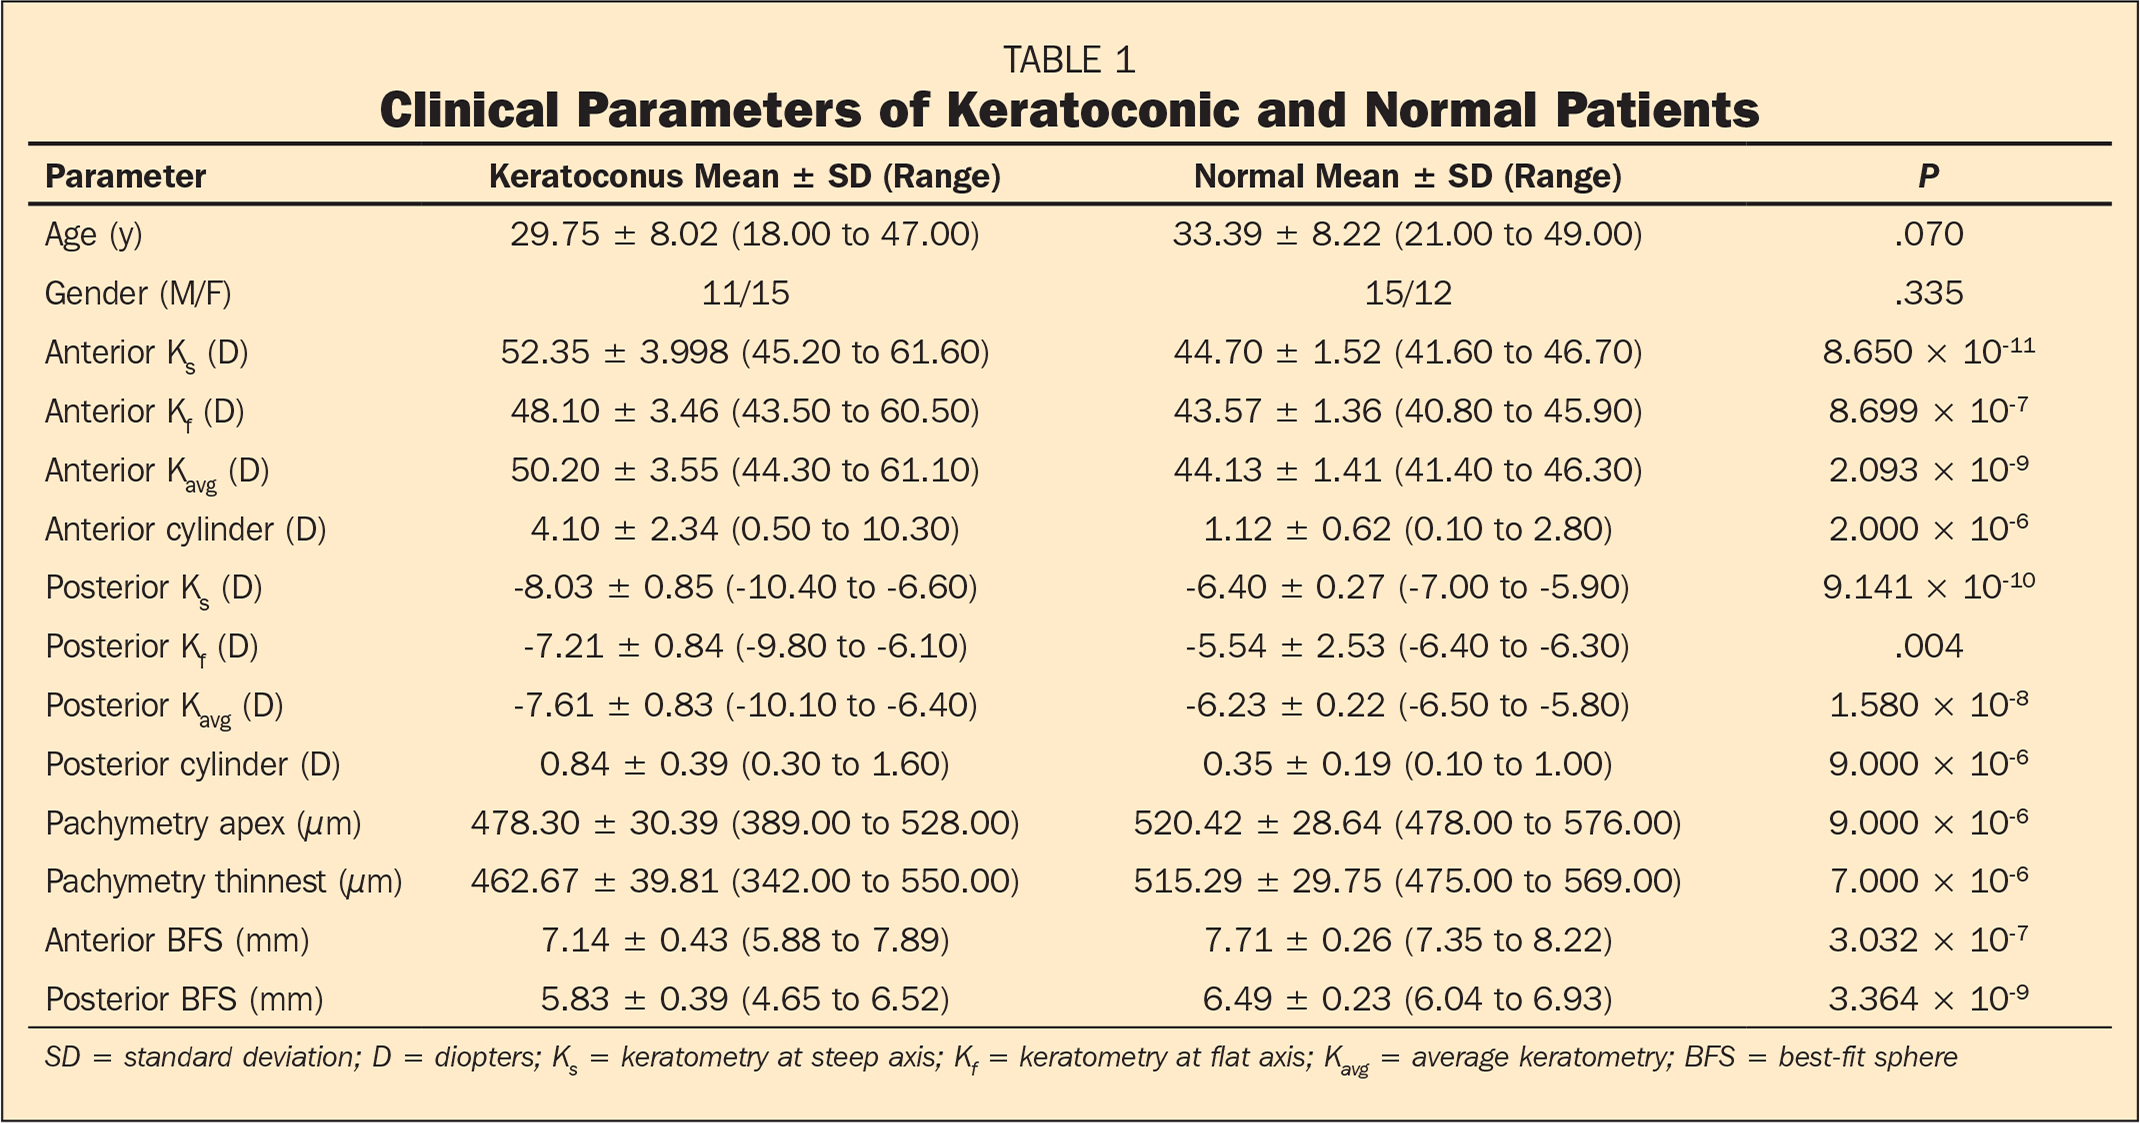 Clinical Parameters of Keratoconic and Normal Patients